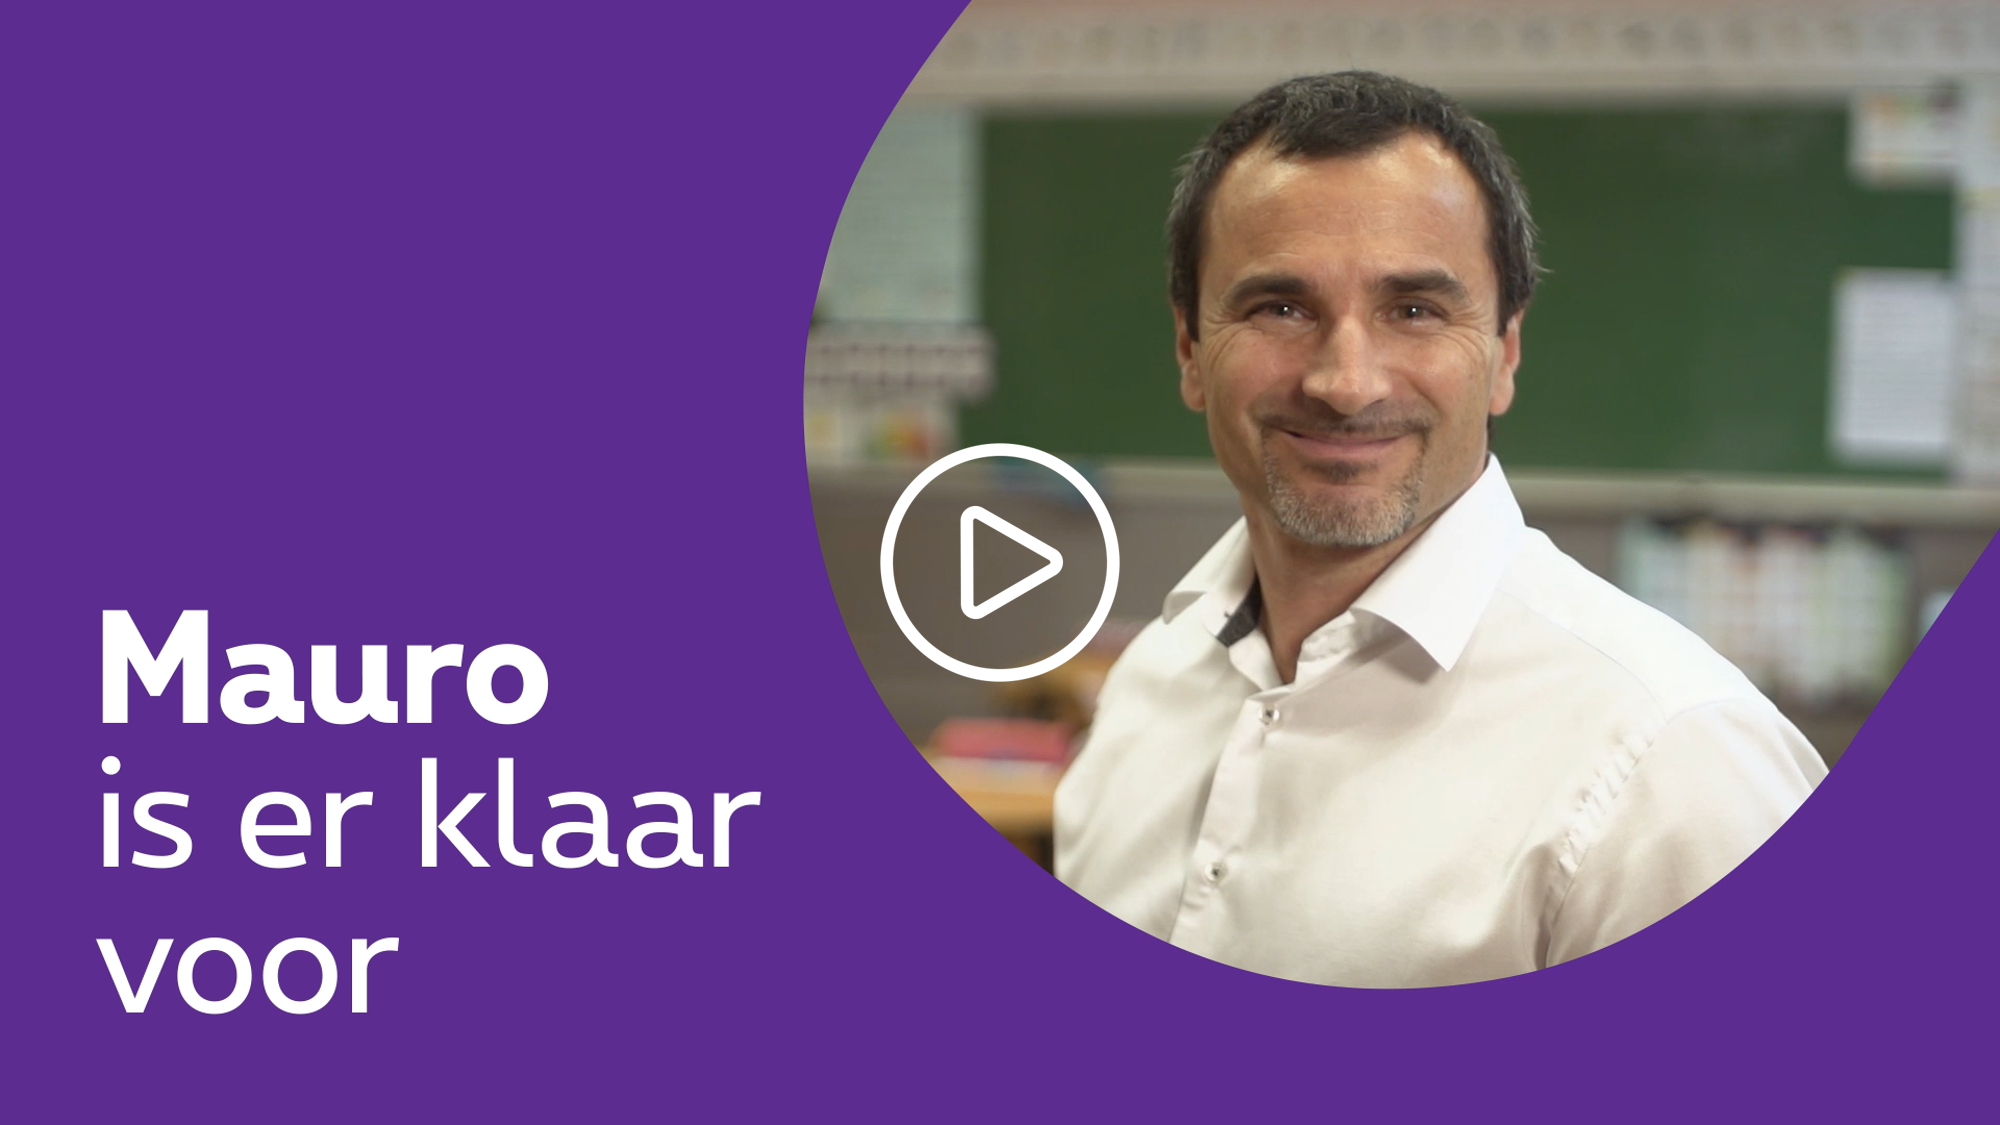 Mauro is klaar voor Internet Safe and Fun met Child Focus - click to see the video on YouTube